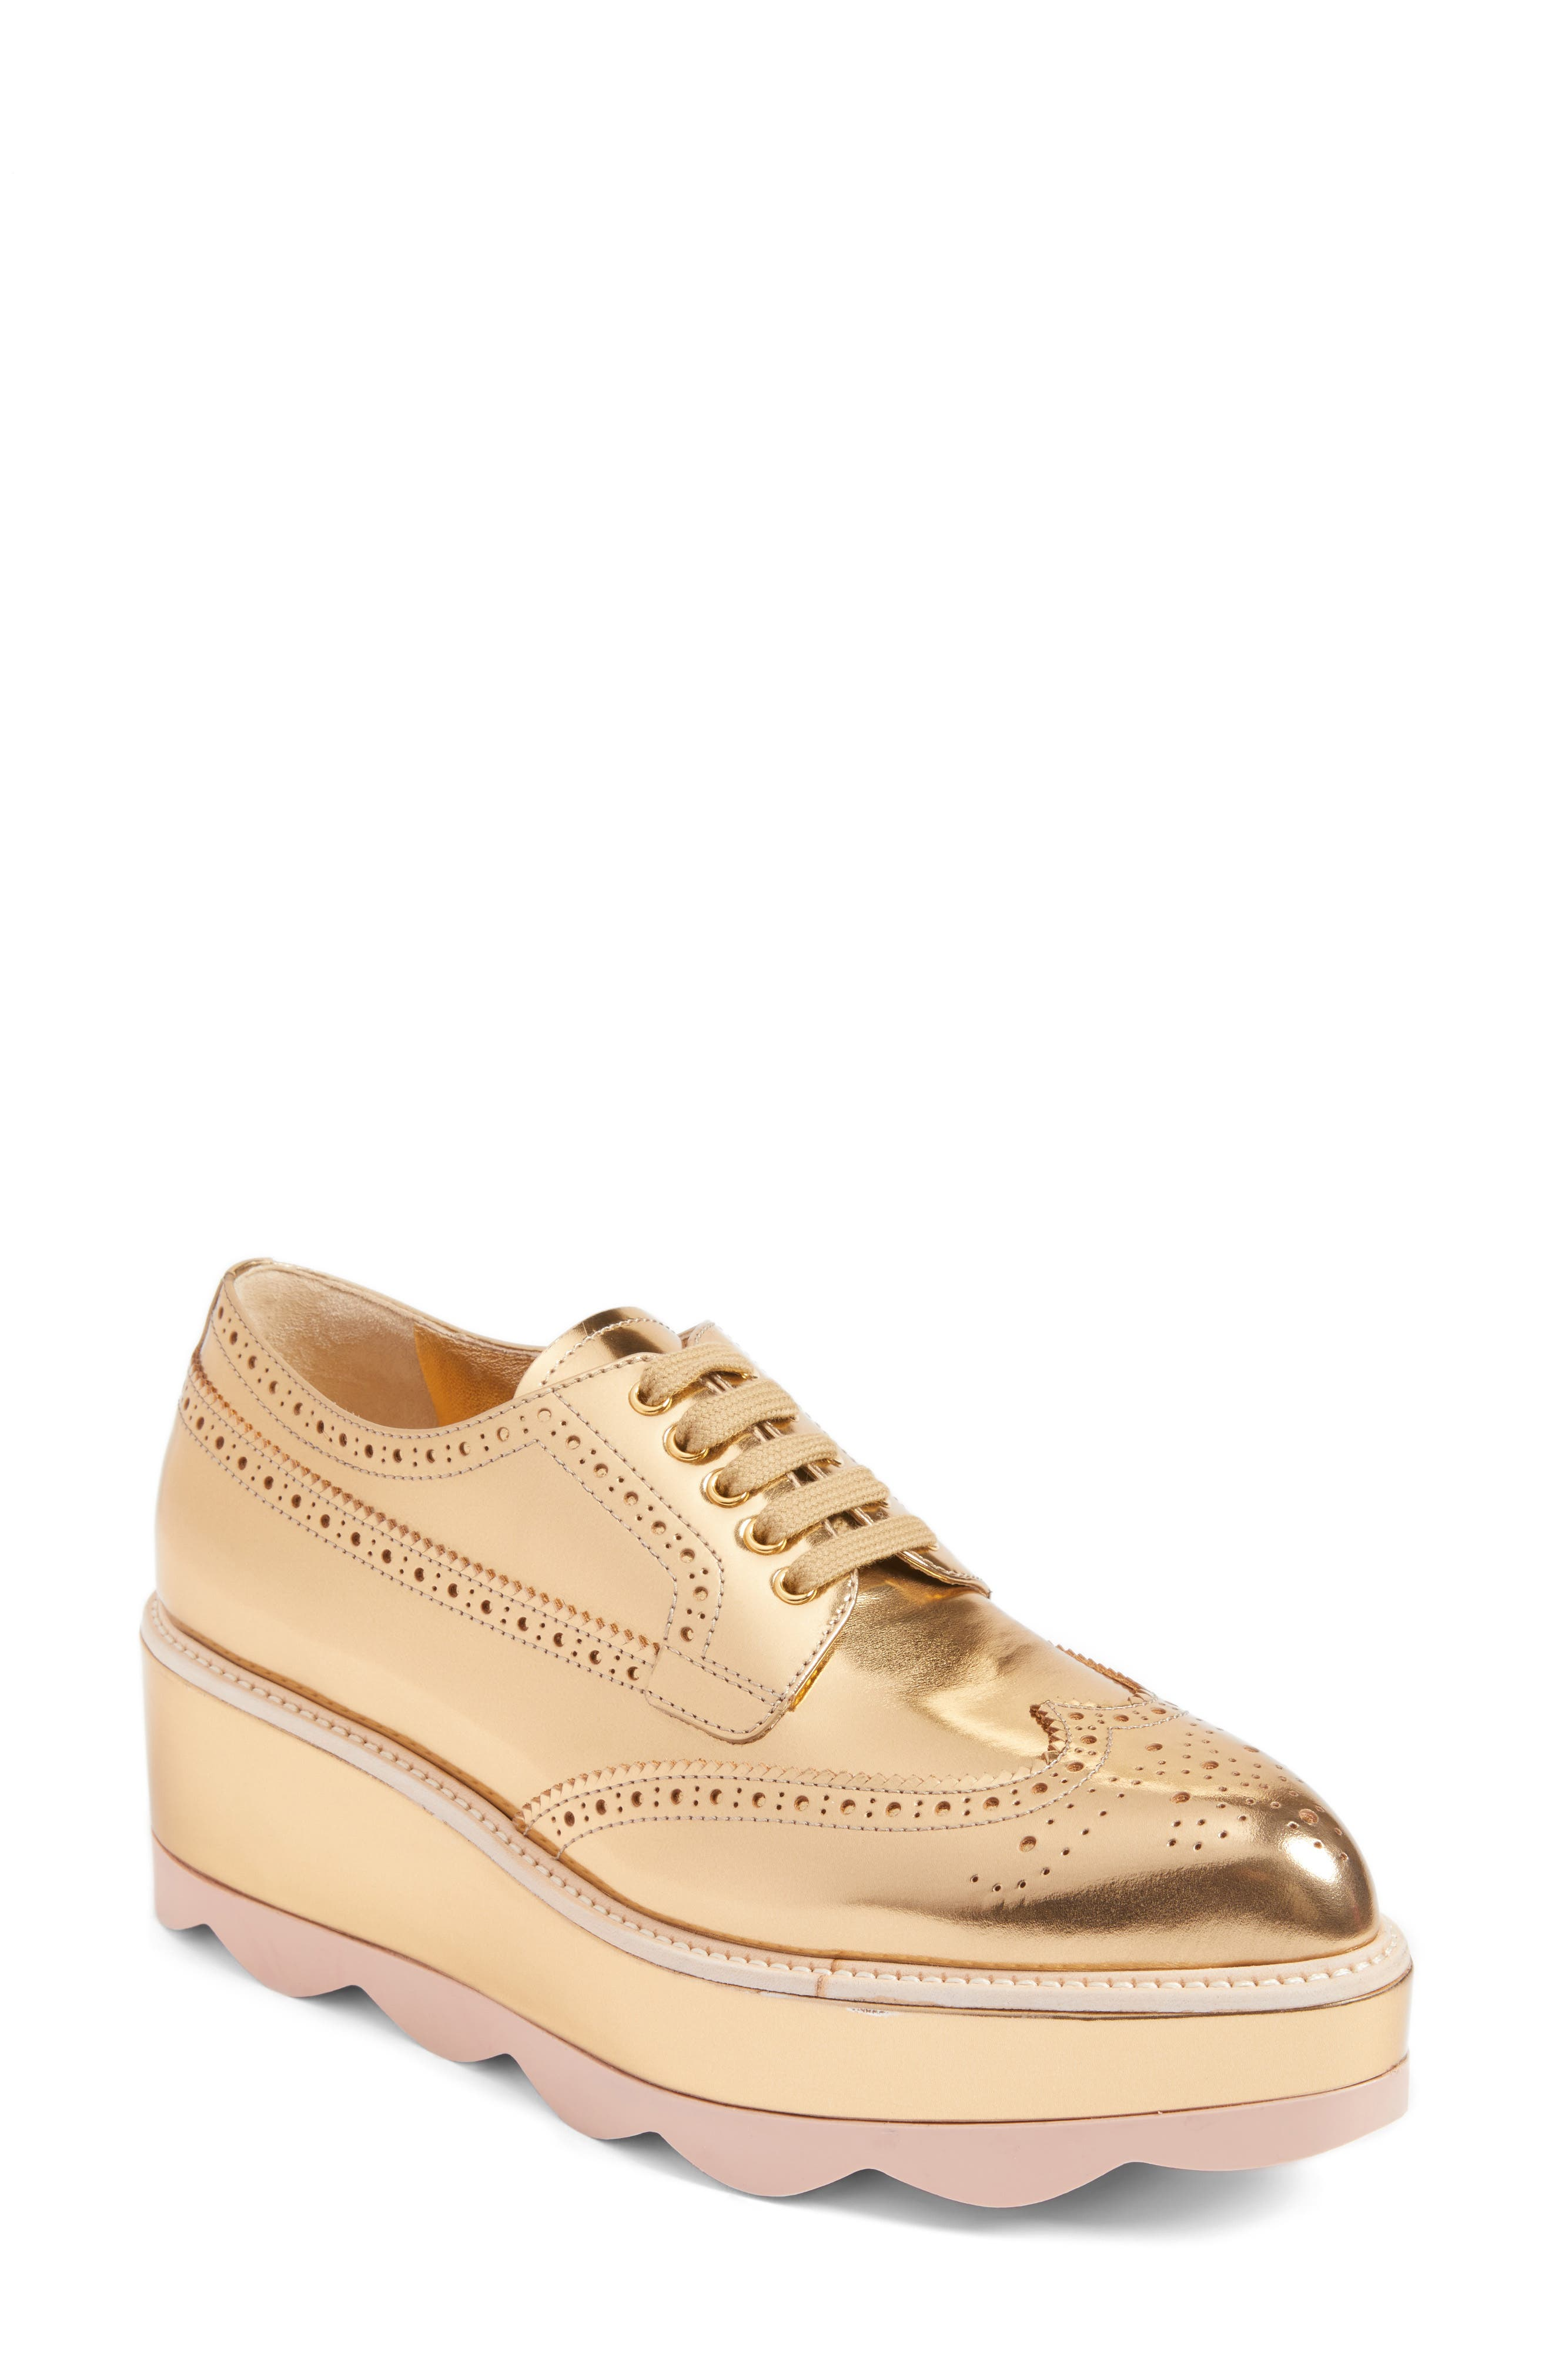 Prada Scalloped Platform Oxford (Women)